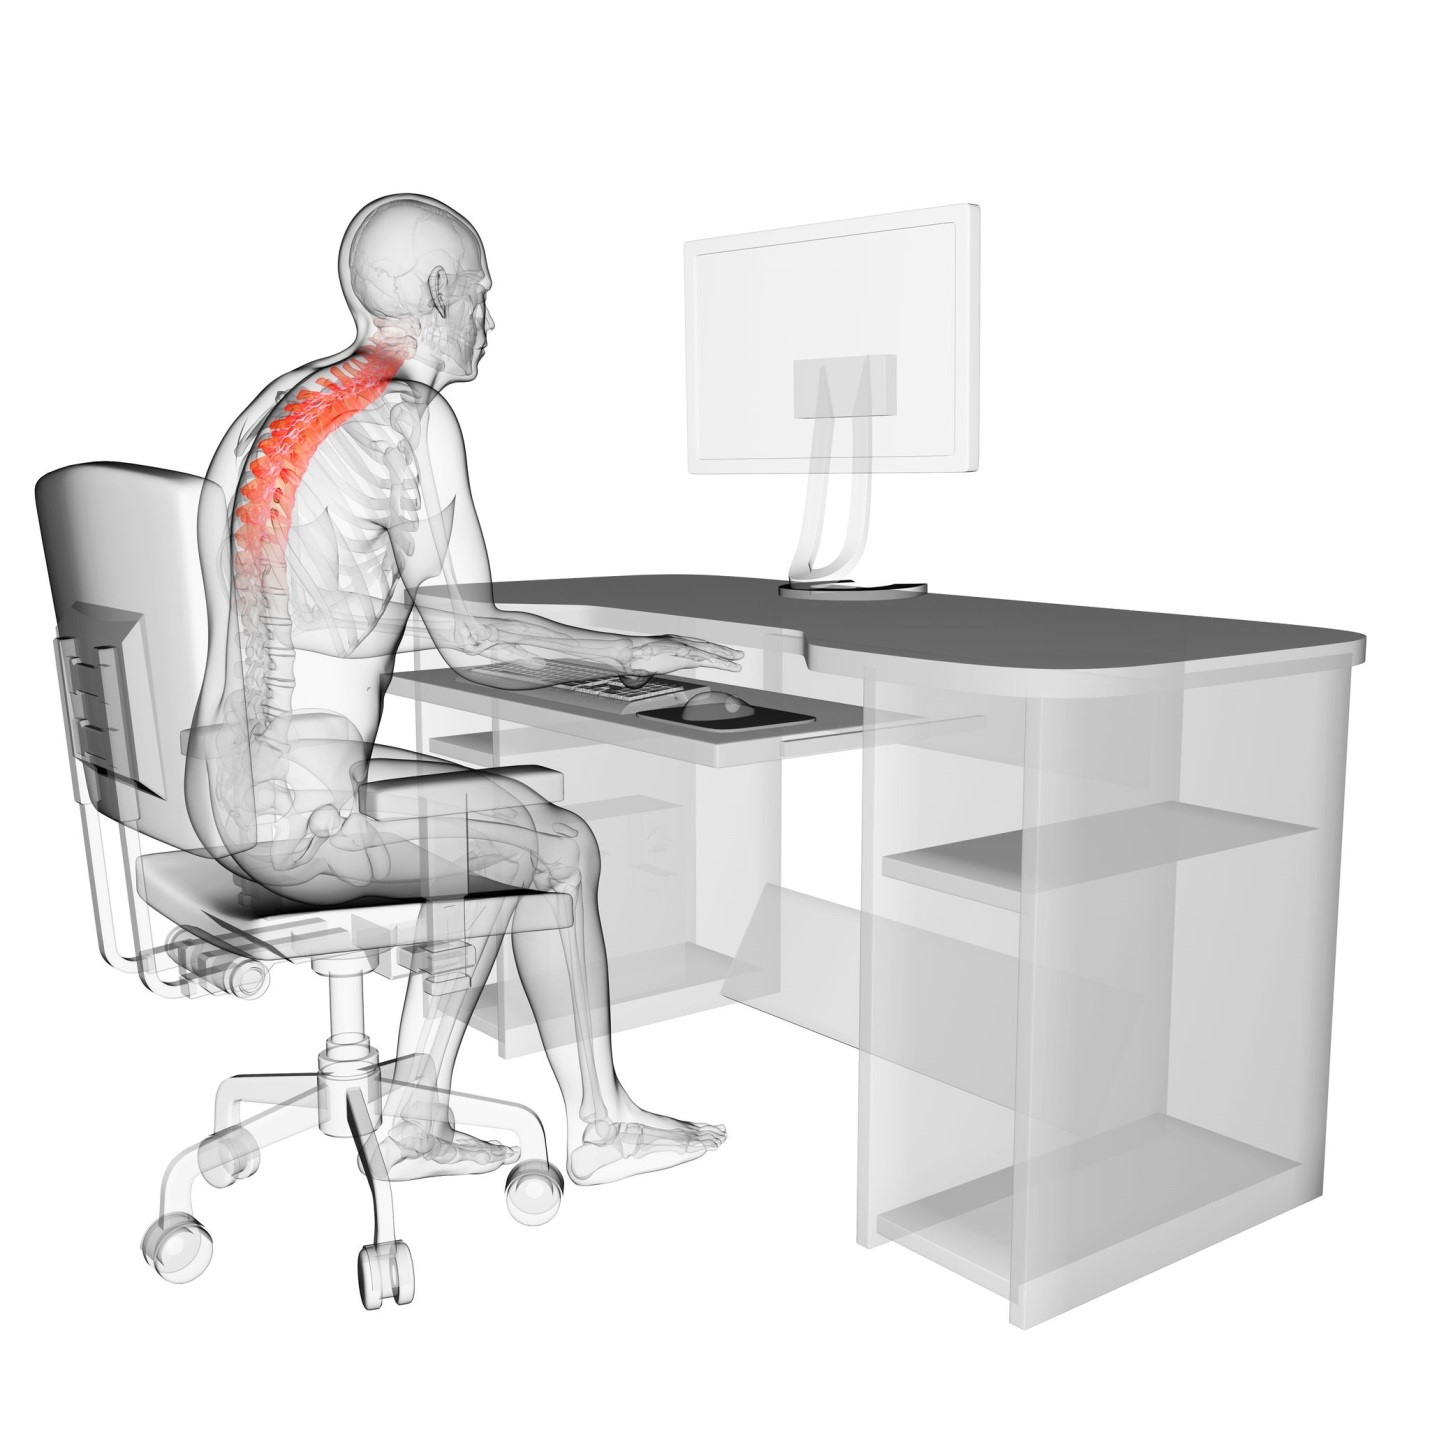 Features to Avoid in an Ergonomic Chair